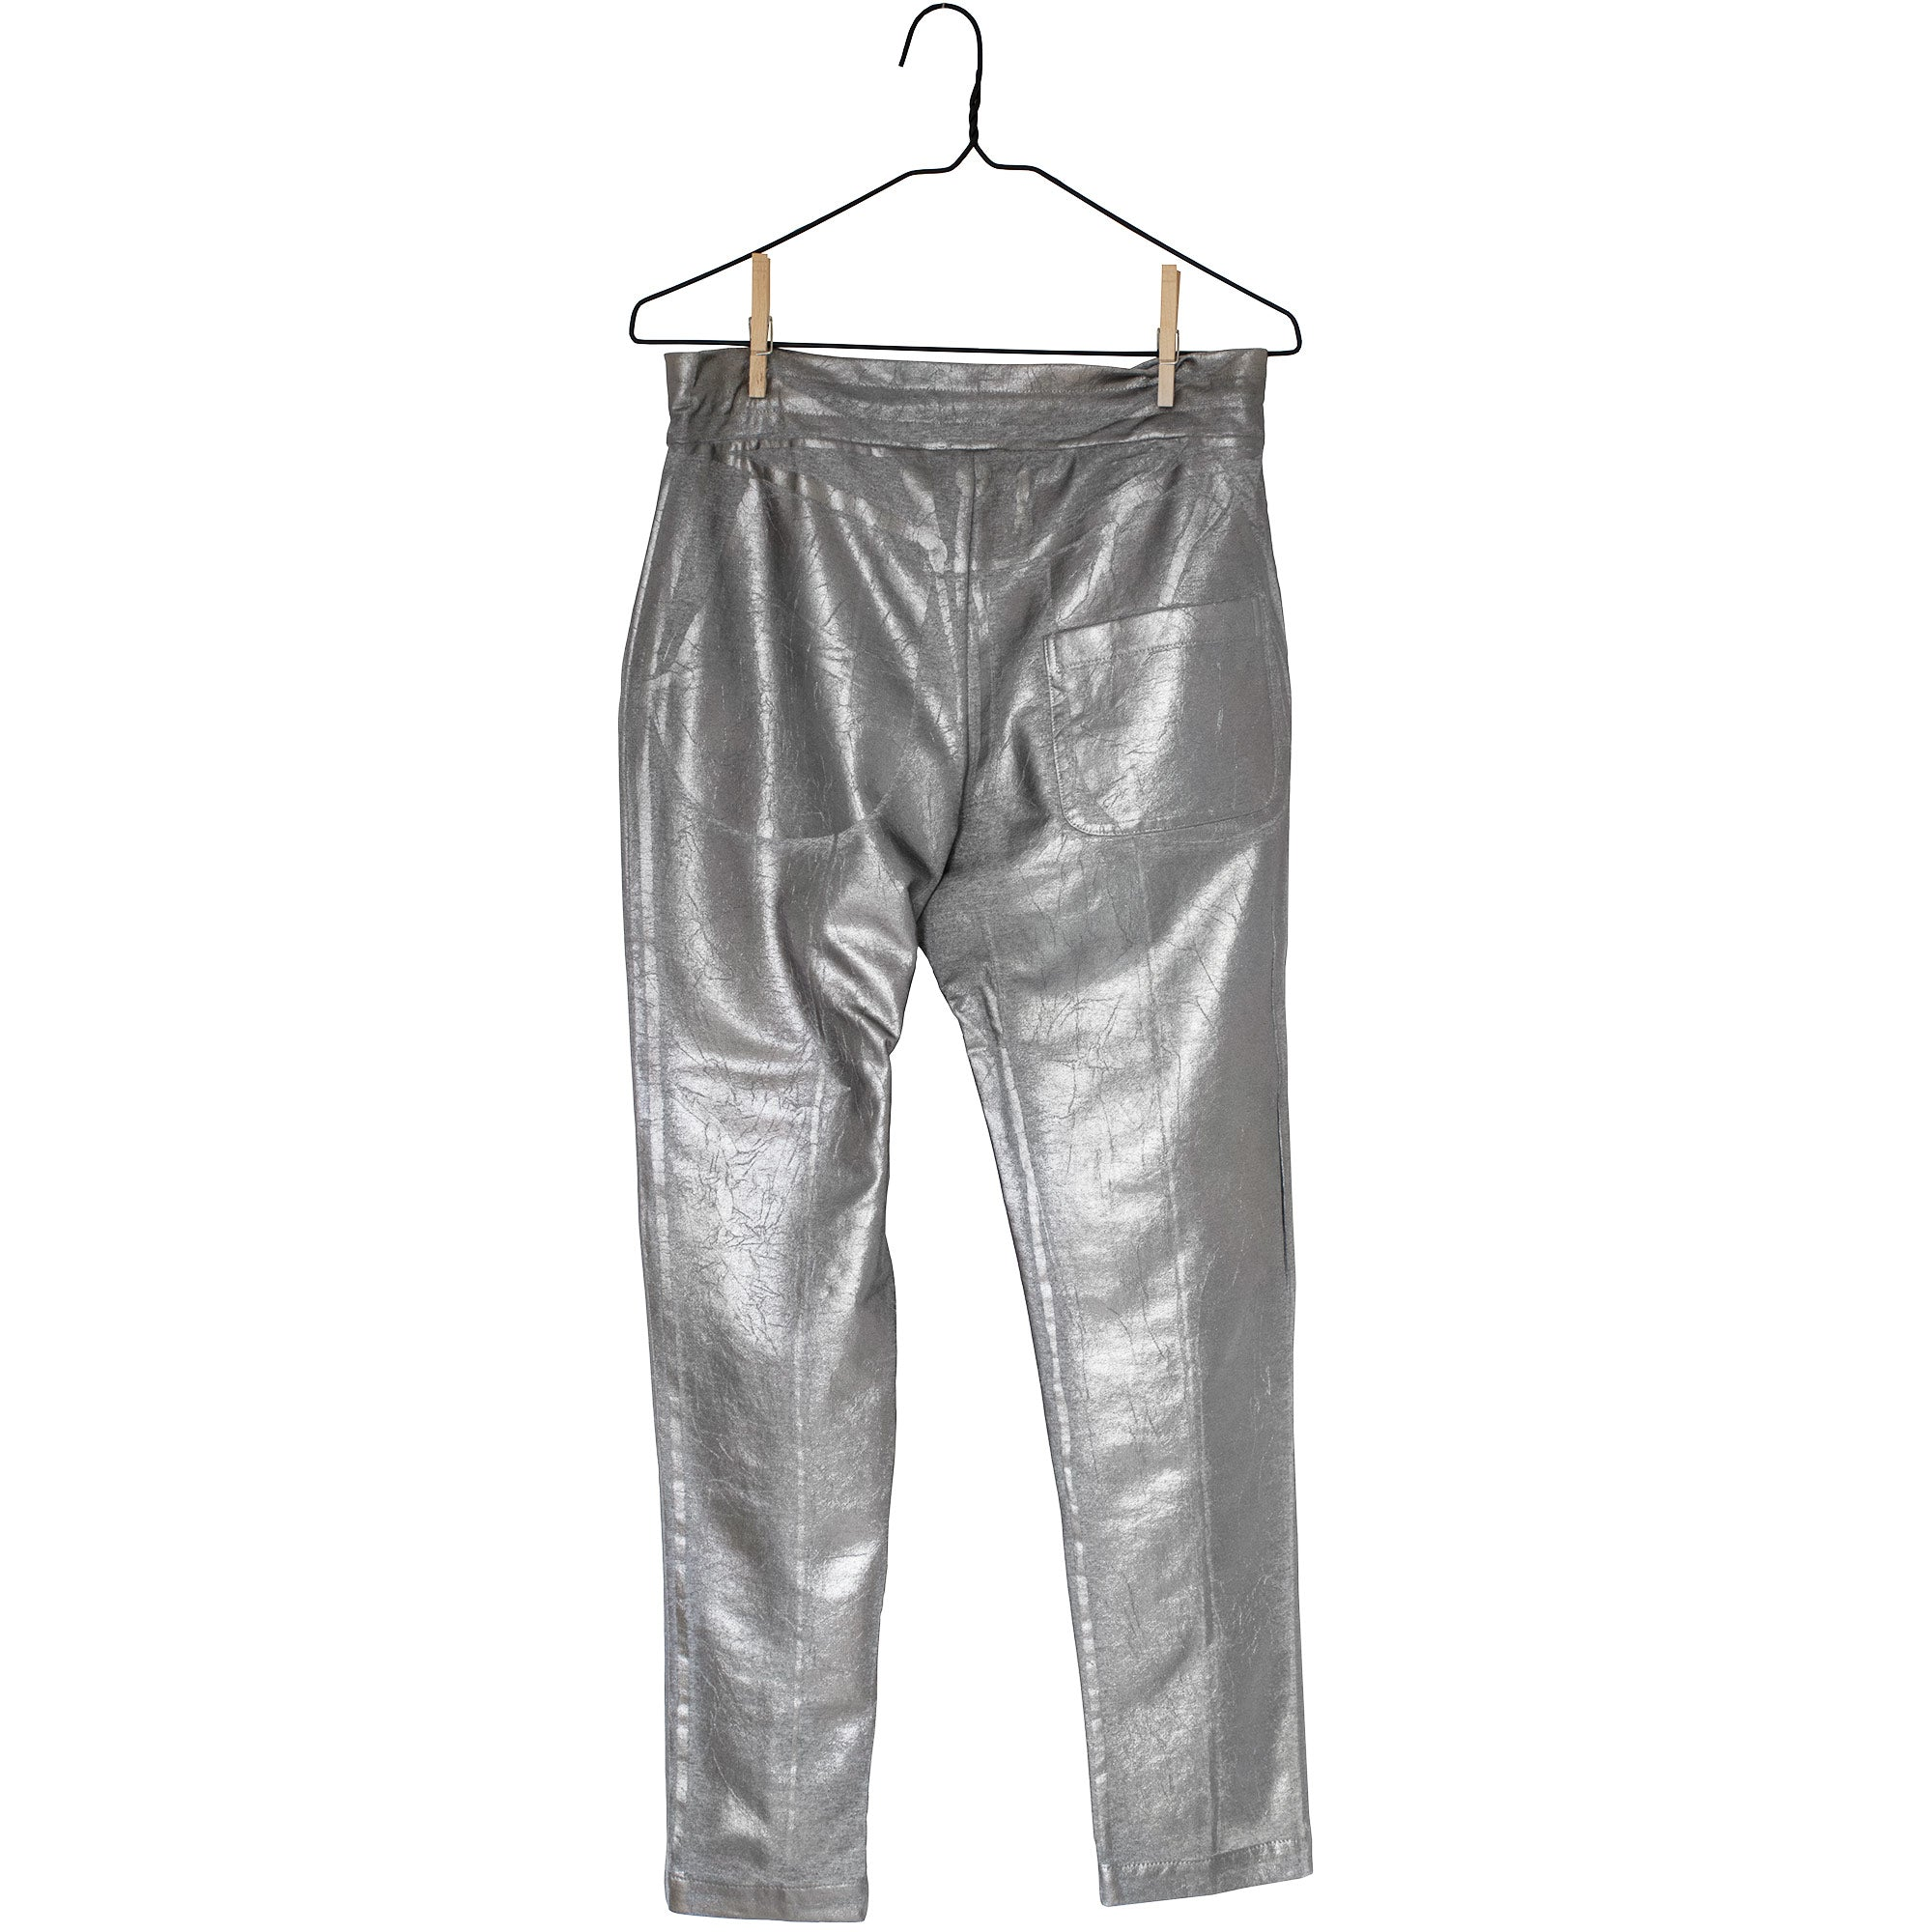 Metallic Sweatpants